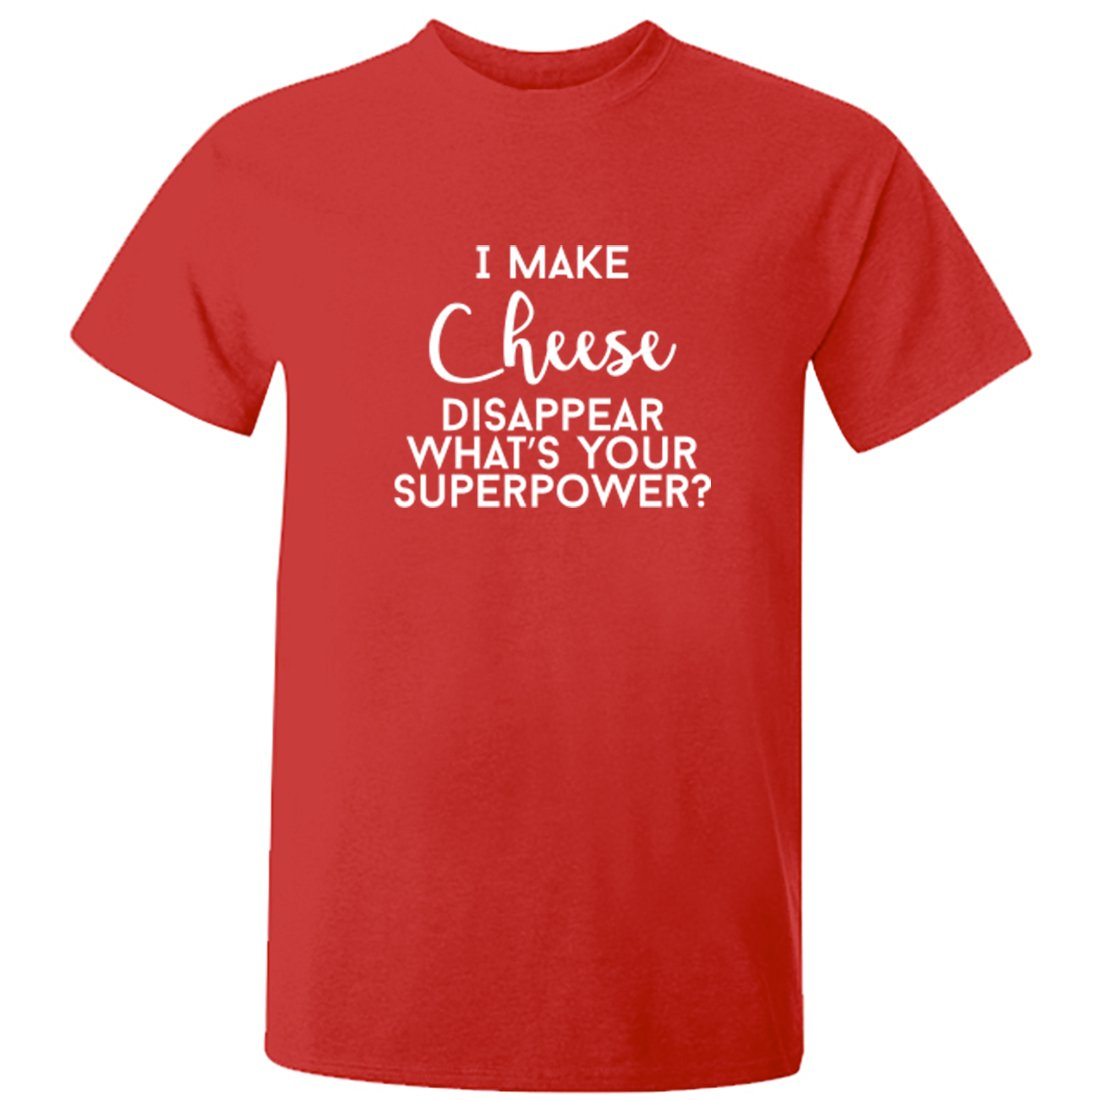 Illustrated Identity Make Cheese Disappear What's Your Superpower? Short Sleeve t-Shirt Ages 3/4-12/14